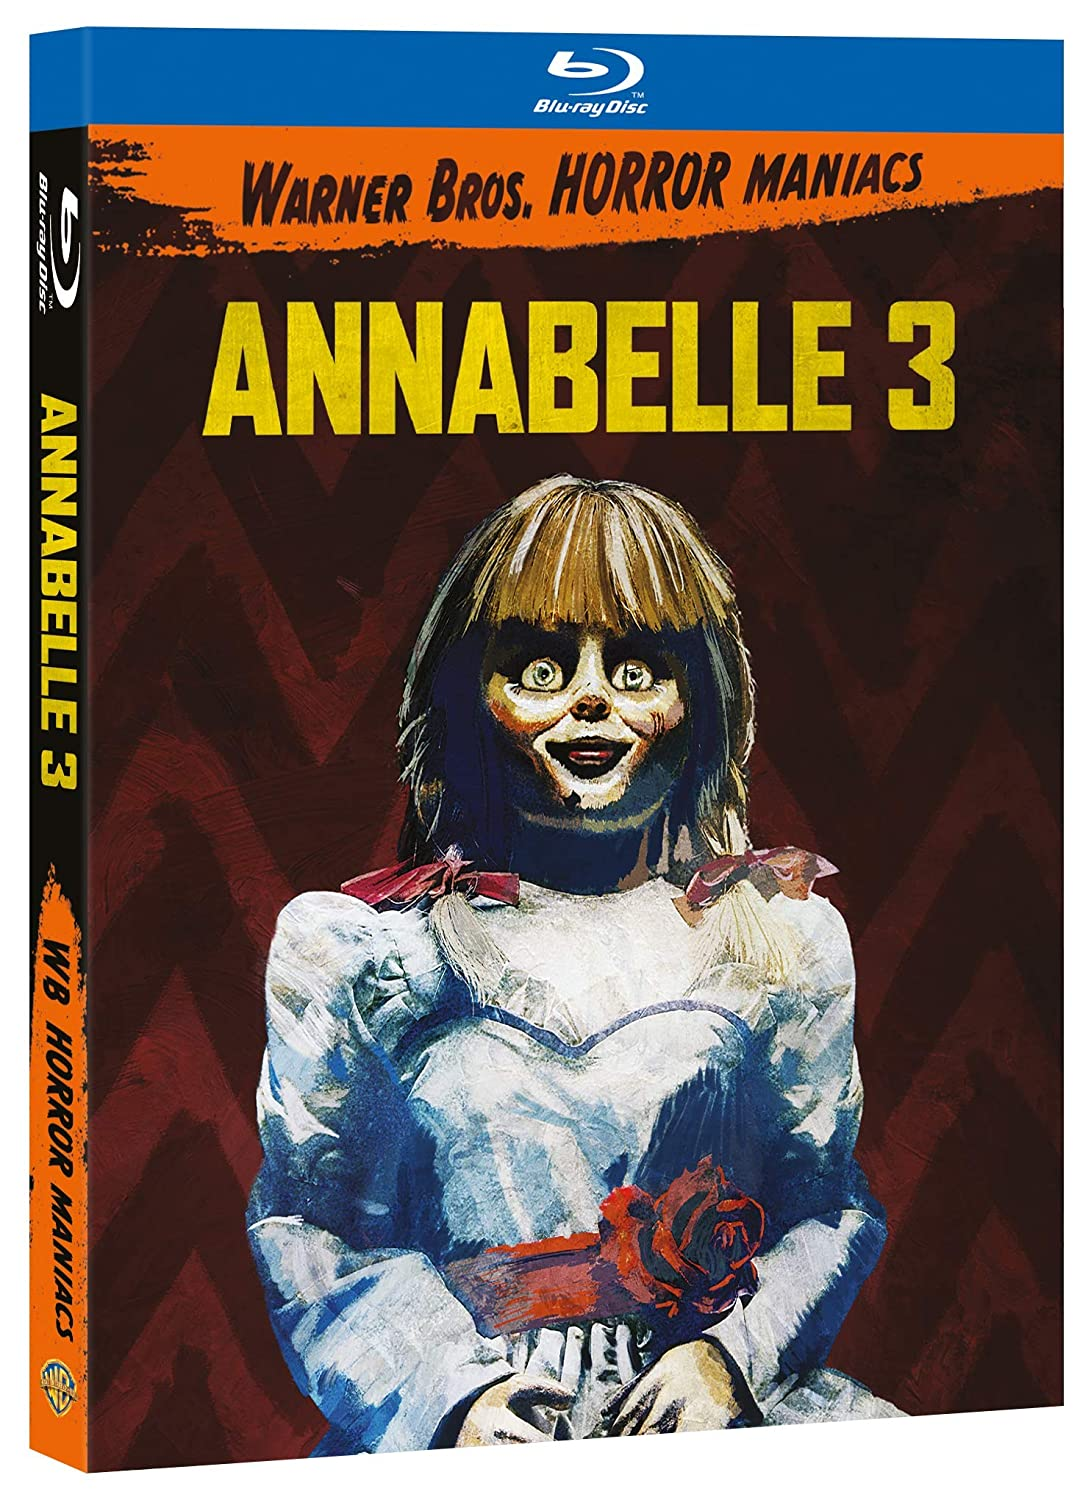 ANNABELLE 3 (HORROR MANIACS COLLECTION) - BLU RAY